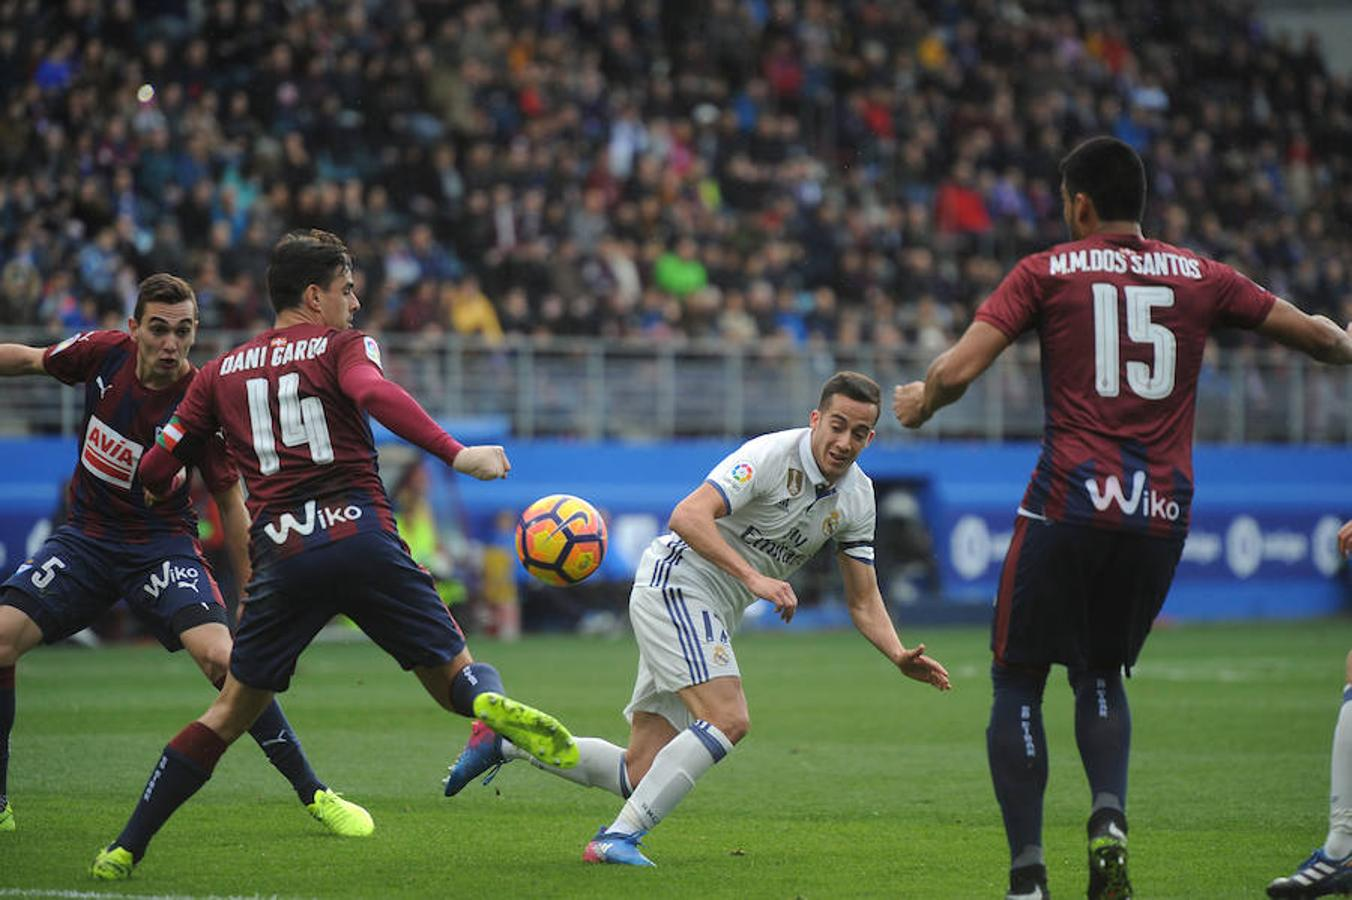 Eibar 1 - 4 Real Madrid